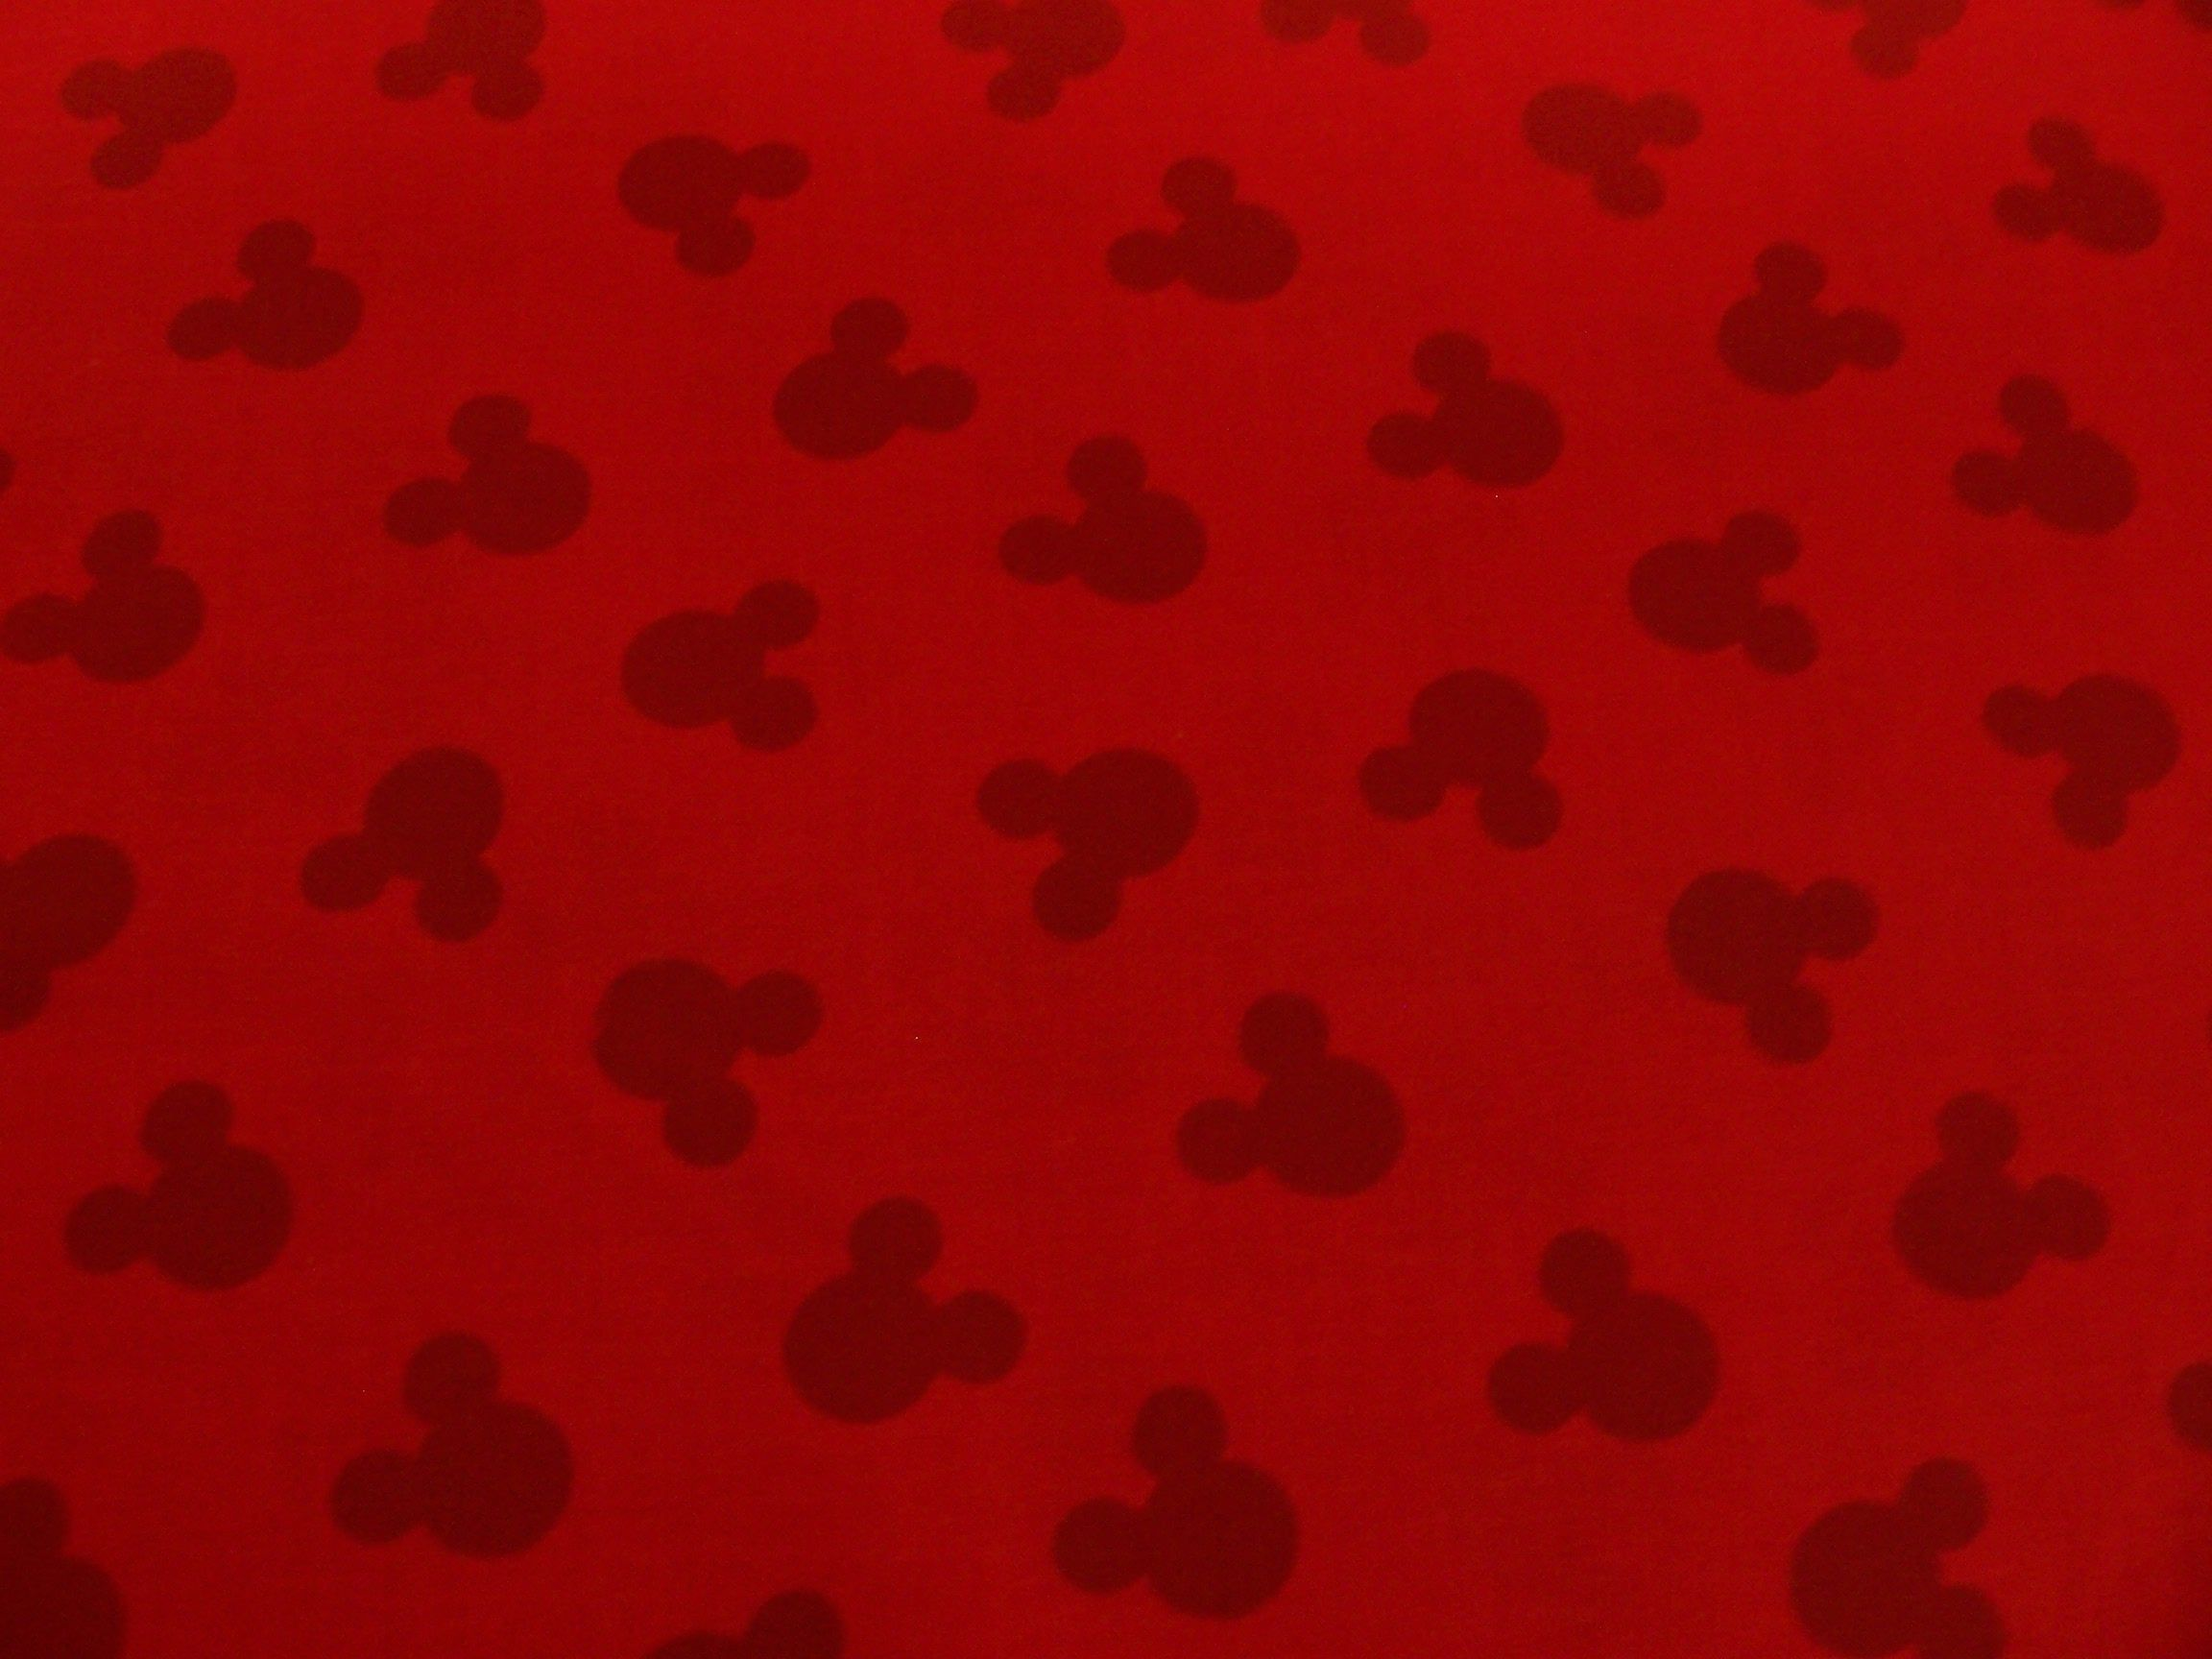 Mickey Mouse Bedroom Wallpaper Mickey Mouse Head Hd Resolution Wallpapers High Resolution